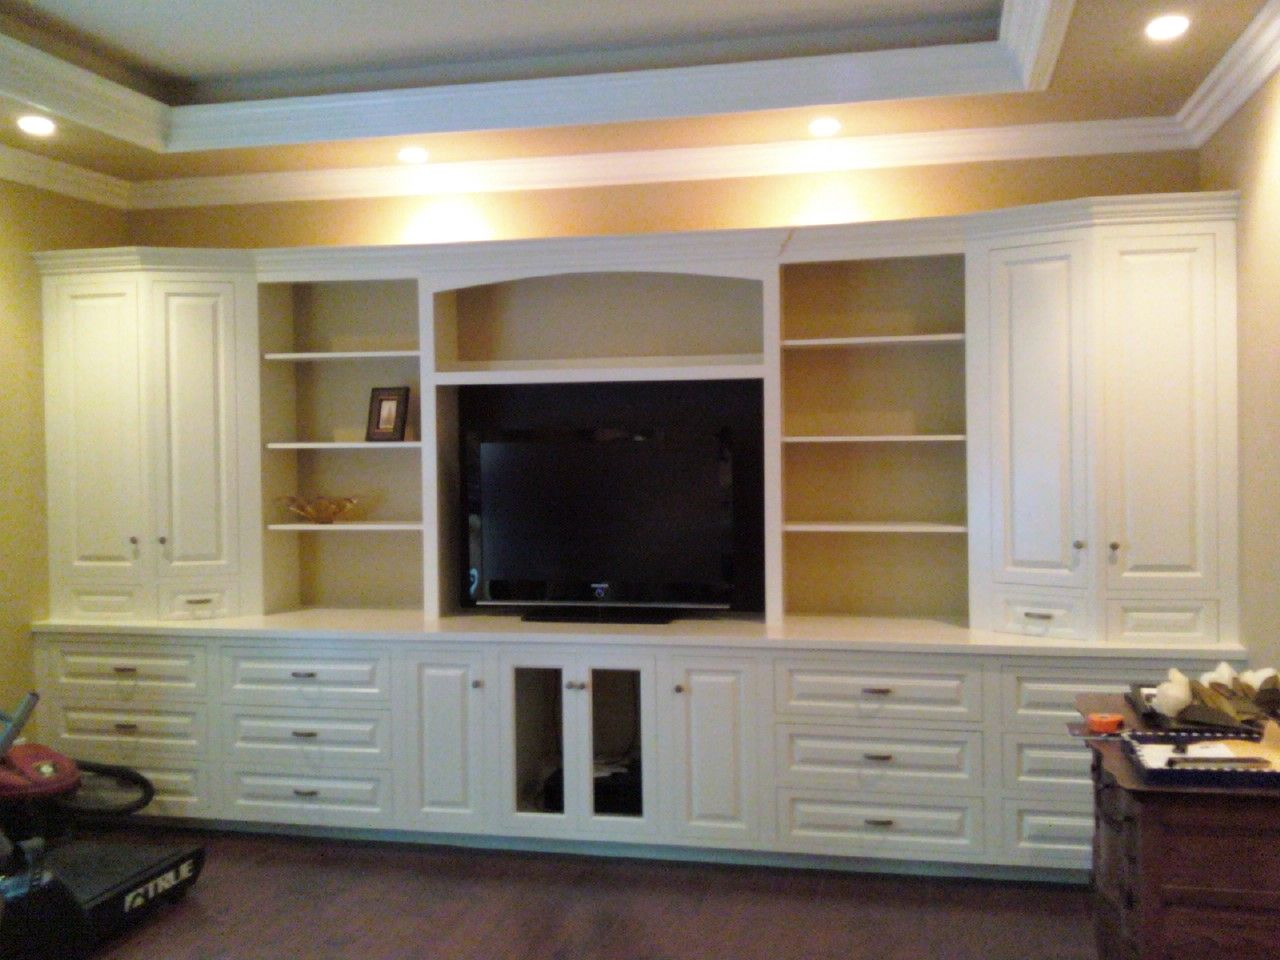 living room wall units with storage - wall units design ideas